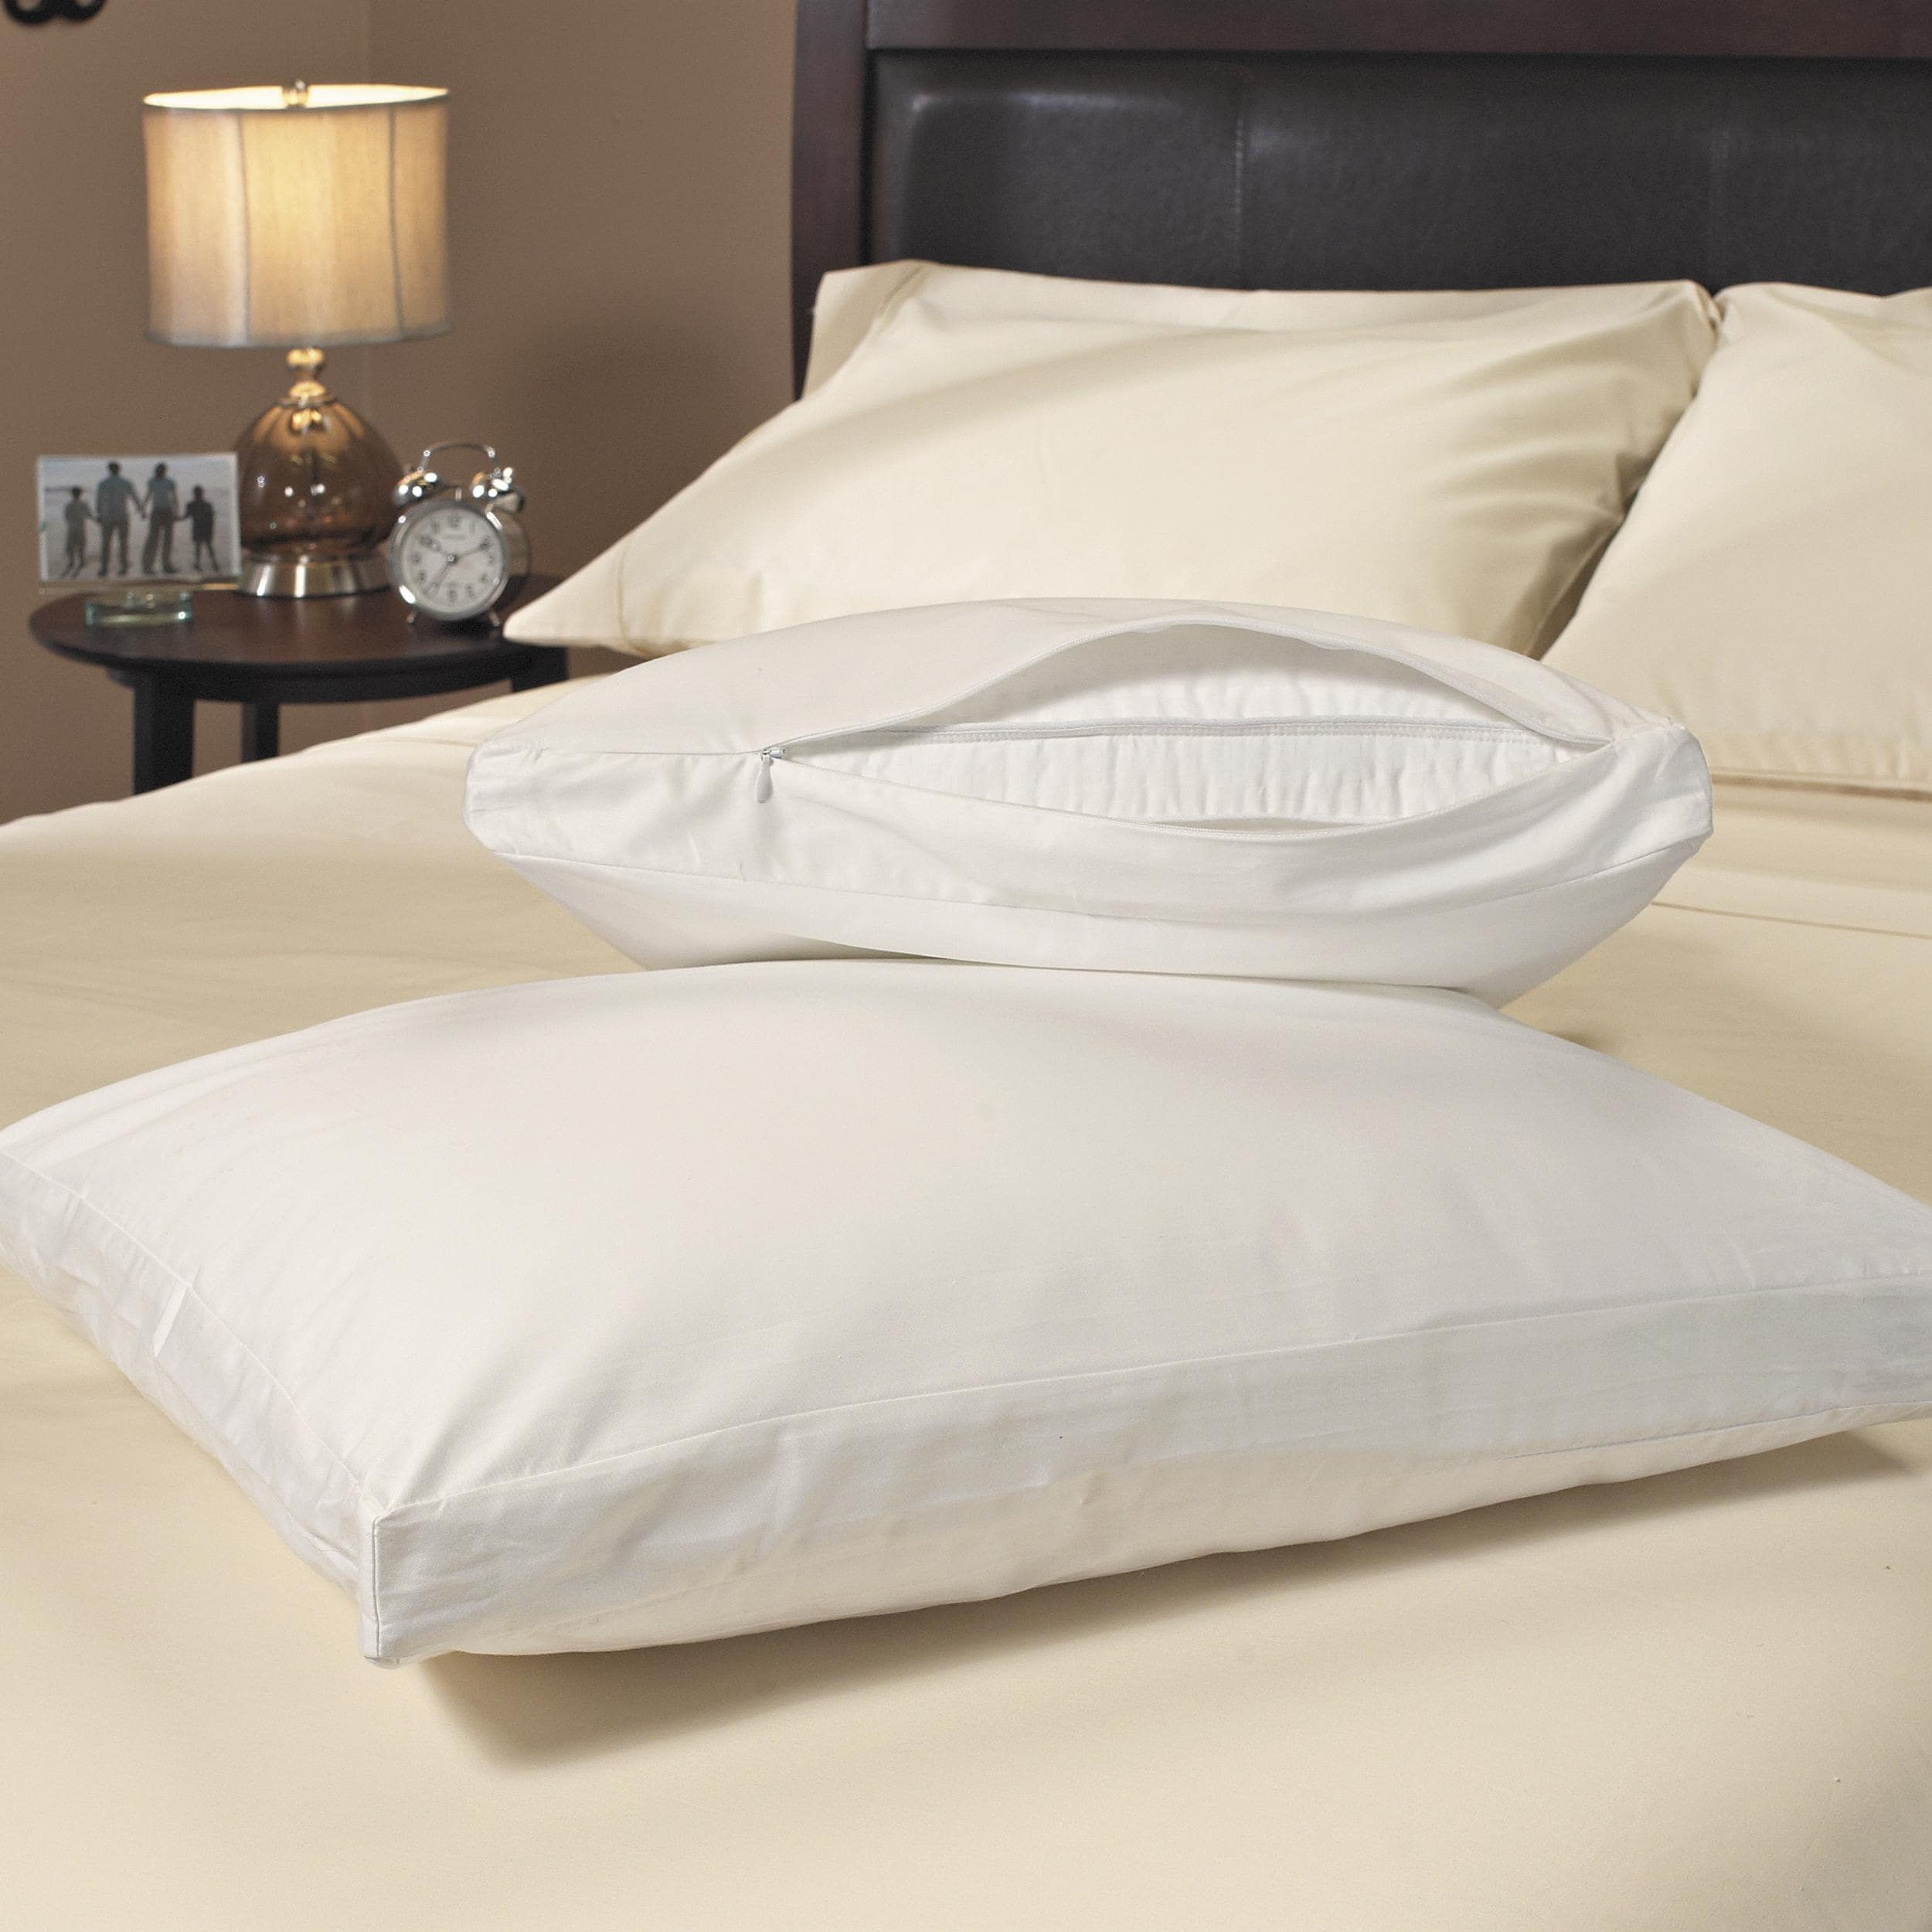 Stain Resistant 300 Thread Count Gusseted Zip Pillow Protector (Set of 2) - White